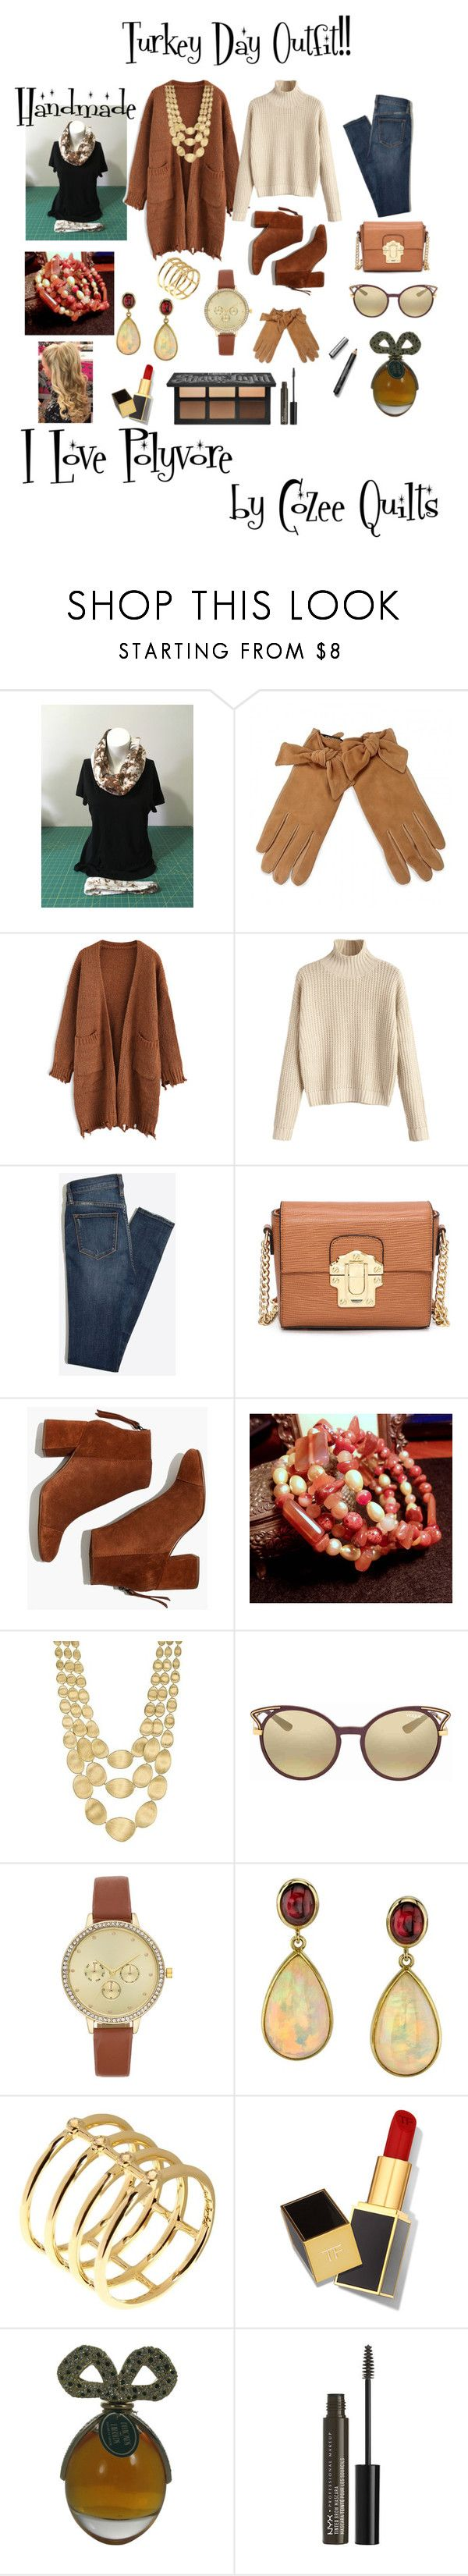 """Fleece Infinity Scarf and Carnelian Wrap Bracelet"" by bamasbabes ❤ liked on Polyvore featuring Chicwish, Madewell, Marco Bicego, Vogue, Sarosi by Timeless Gems, Elizabeth and James, Tom Ford, NYX and Burberry"